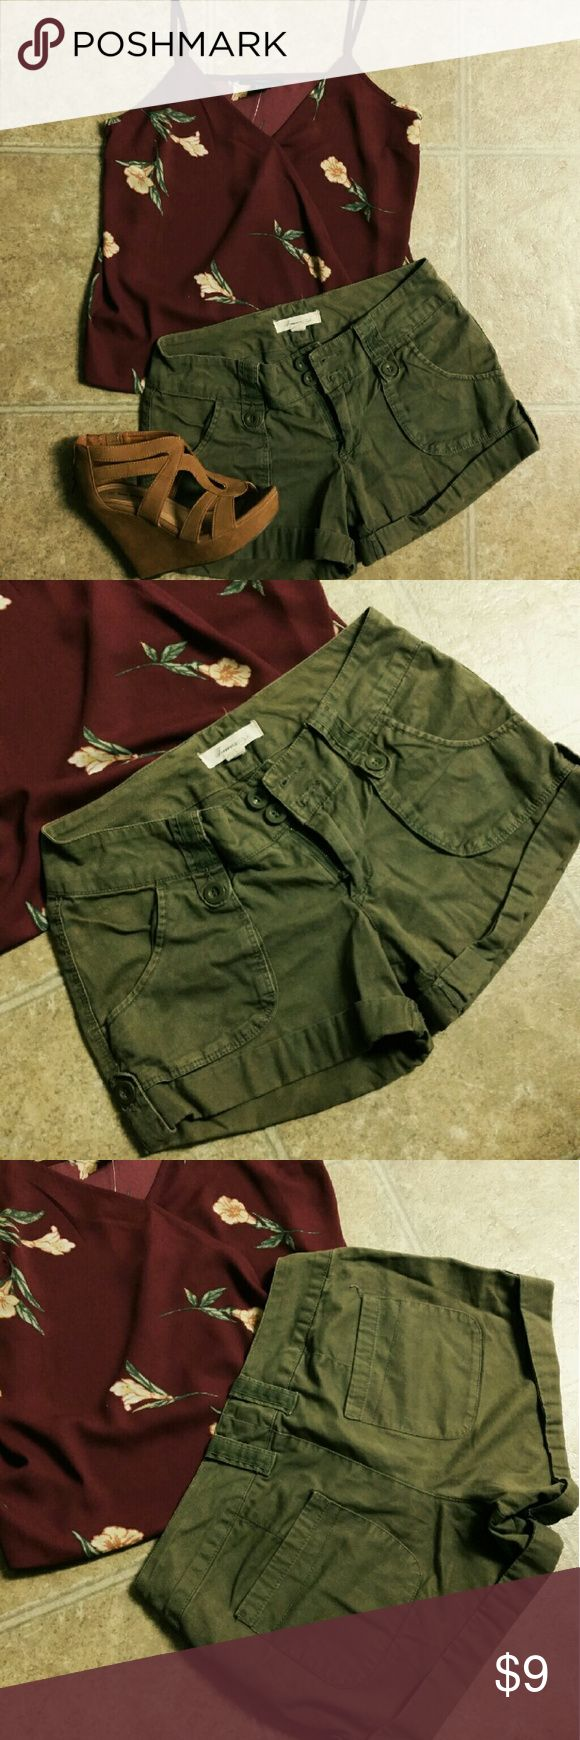 Olive Green Cargo Shorts Gently worn & in good condition :) Forever 21 Shorts Cargos